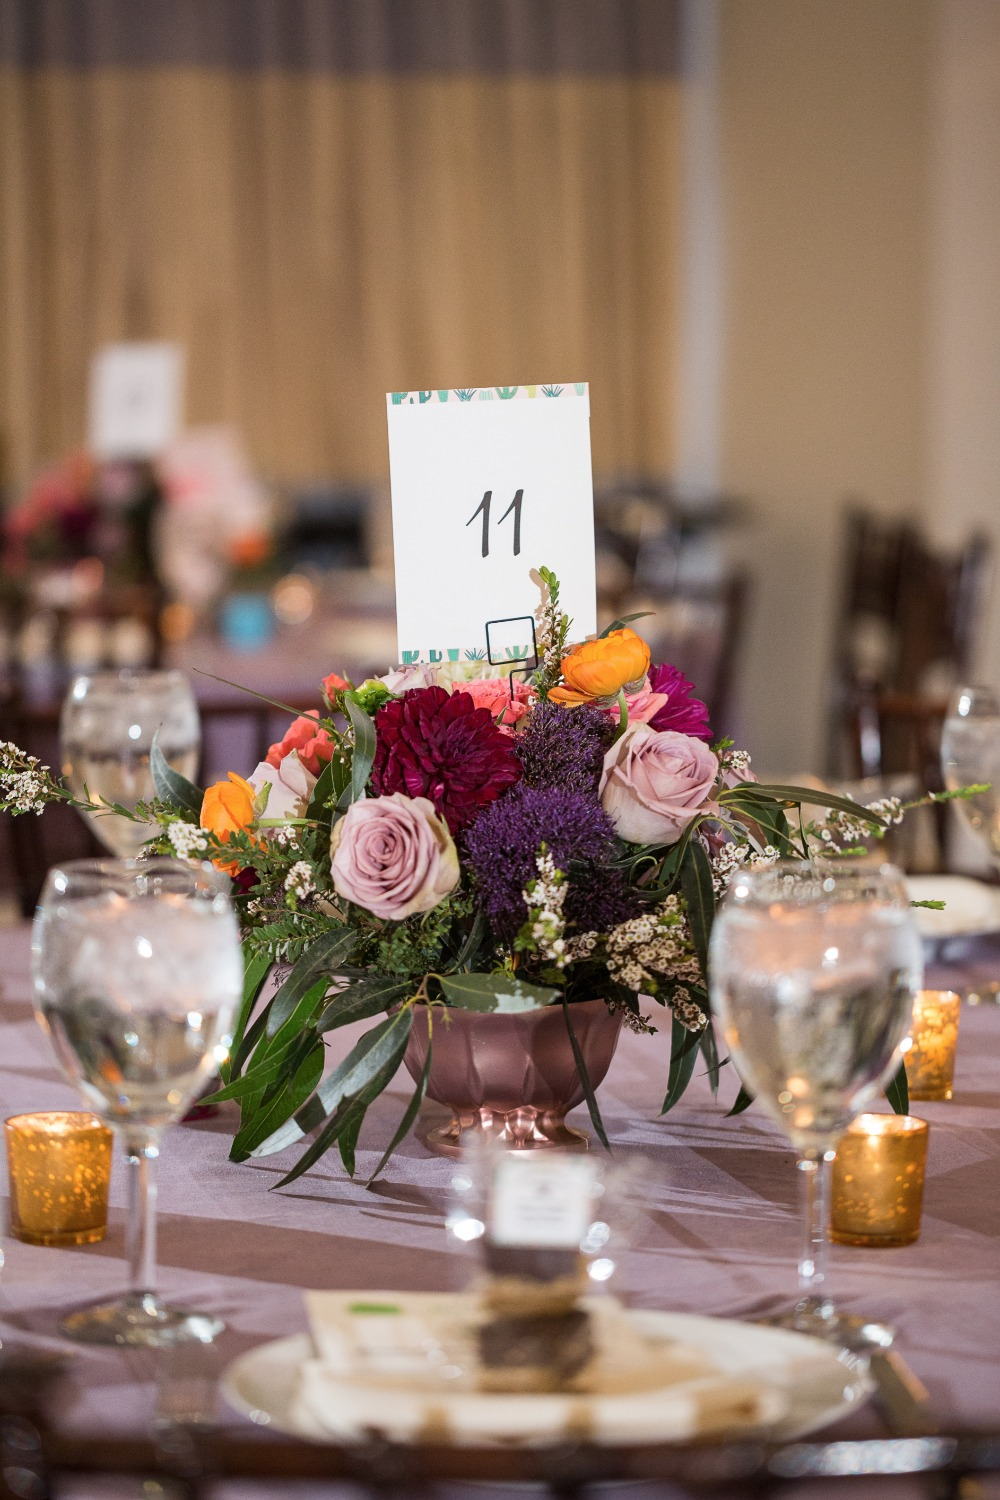 Centerpiece florals and table number ideas